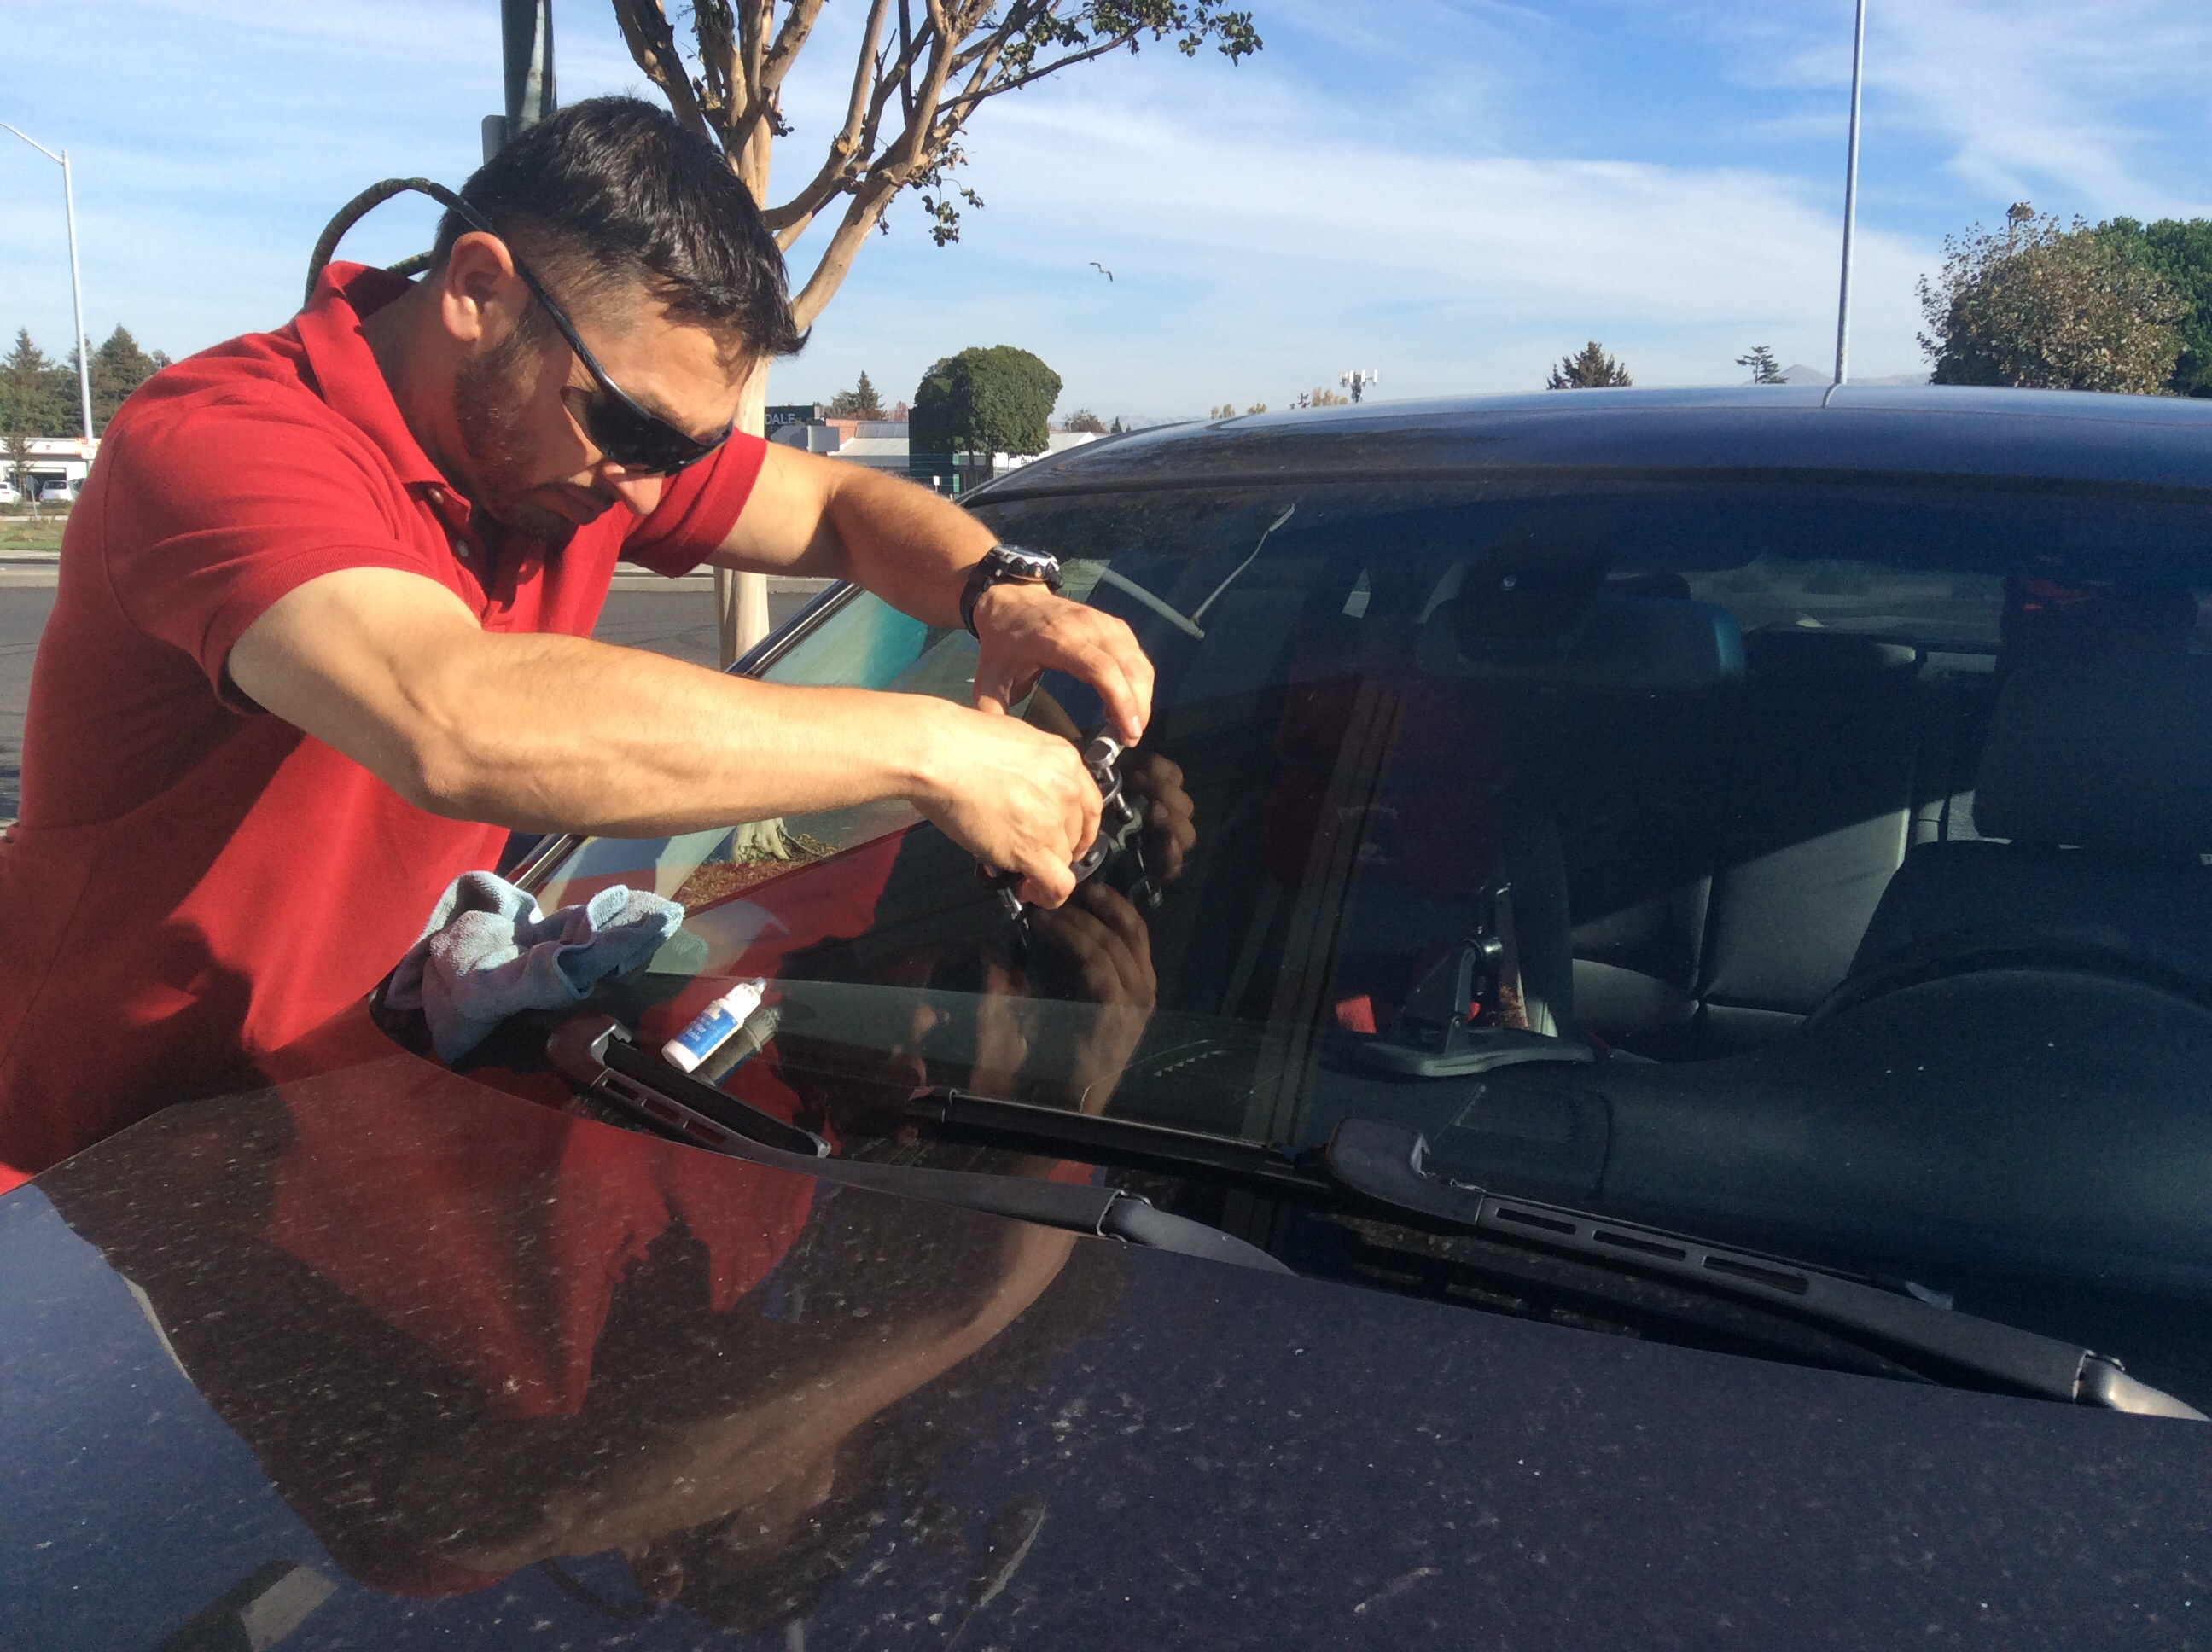 Windshield Chip Repair in Fremont California by Changeautoglass.com